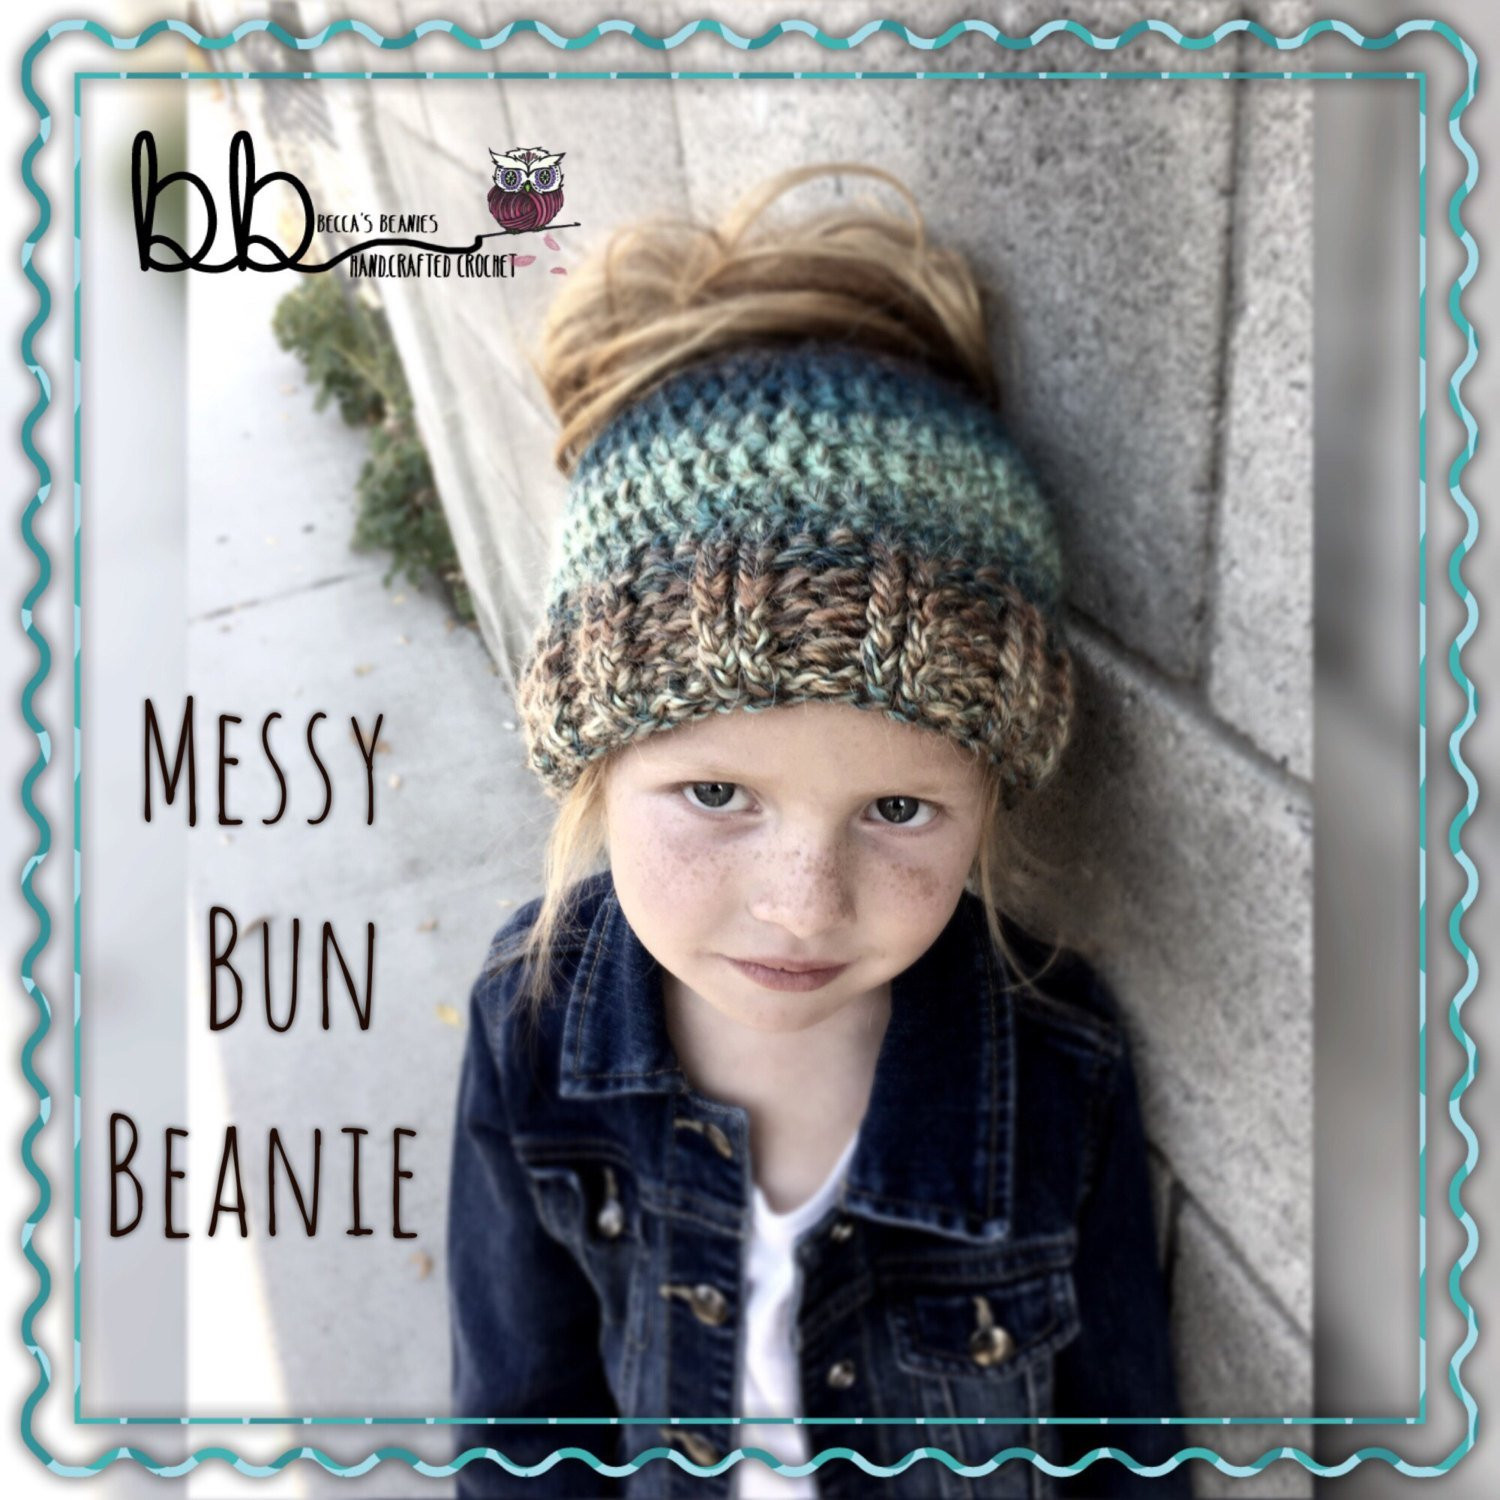 Messy Bun Beanie Best Of Messy Bun Crochet Beanie Made to order toddler Child Of Perfect 45 Photos Messy Bun Beanie